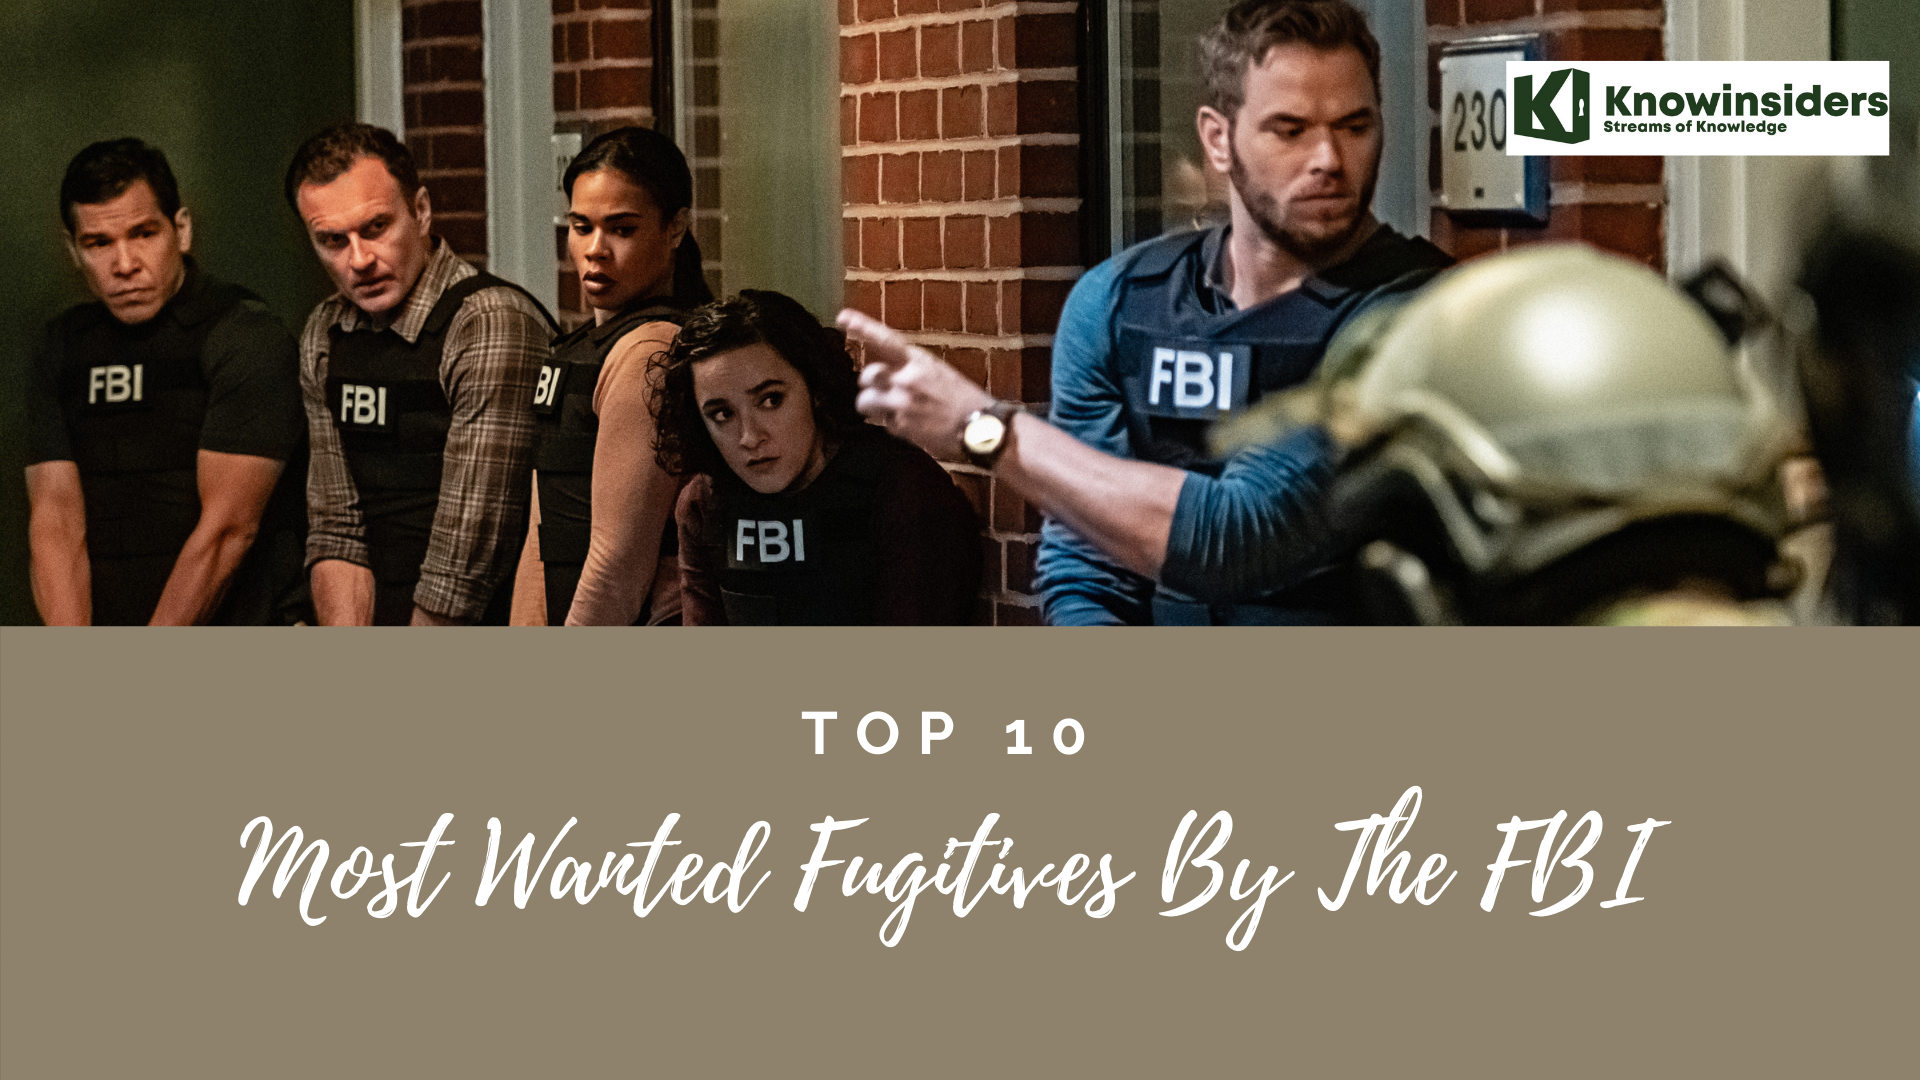 Top 10 Most Wanted Fugitives By FBI In The US